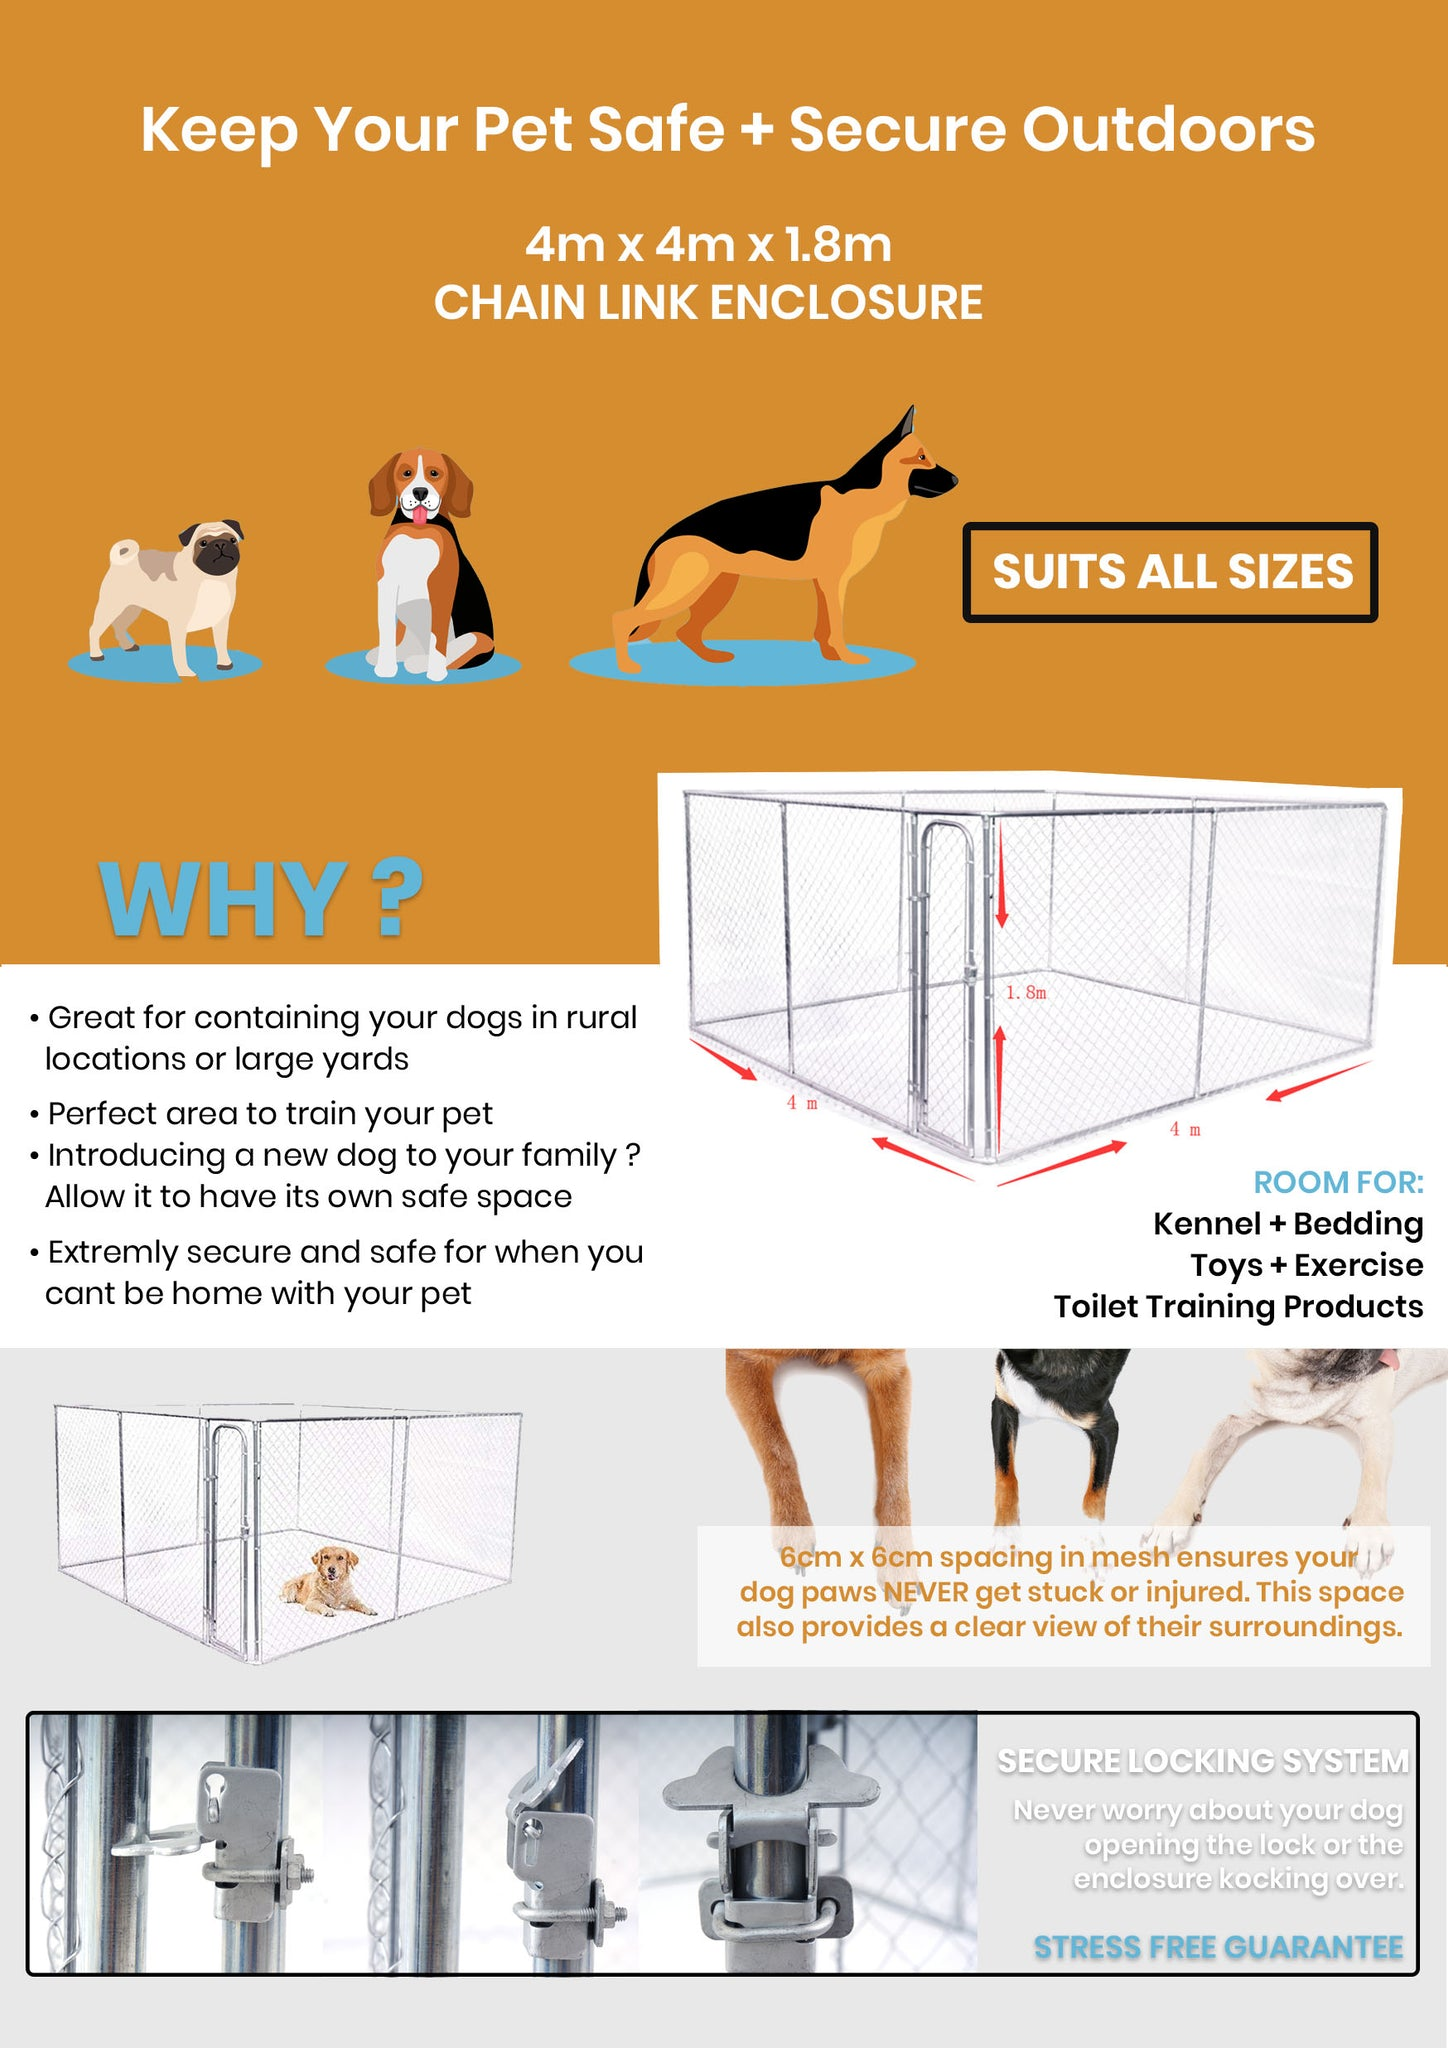 infographic about how the pet enclosure keeps your pet safe